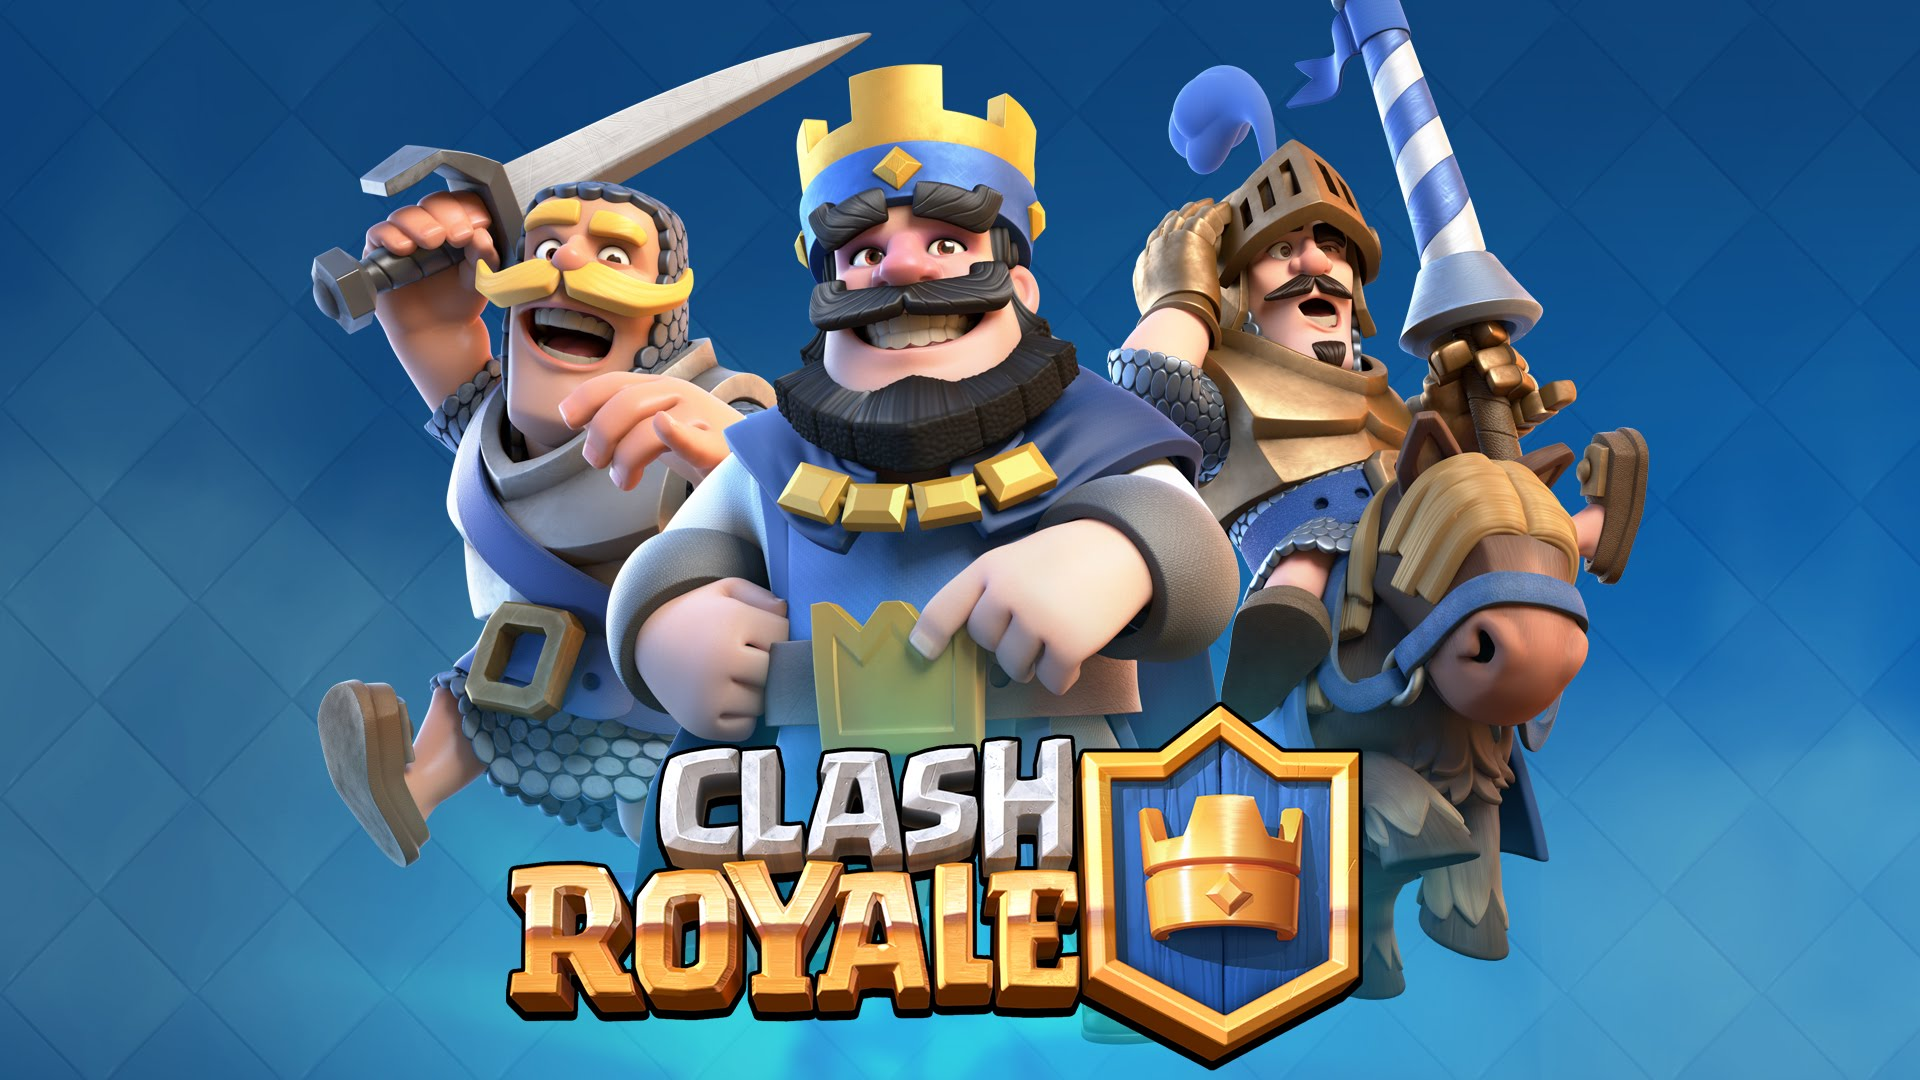 Clash Royale How To Get Magical Chest | clash royale free gems